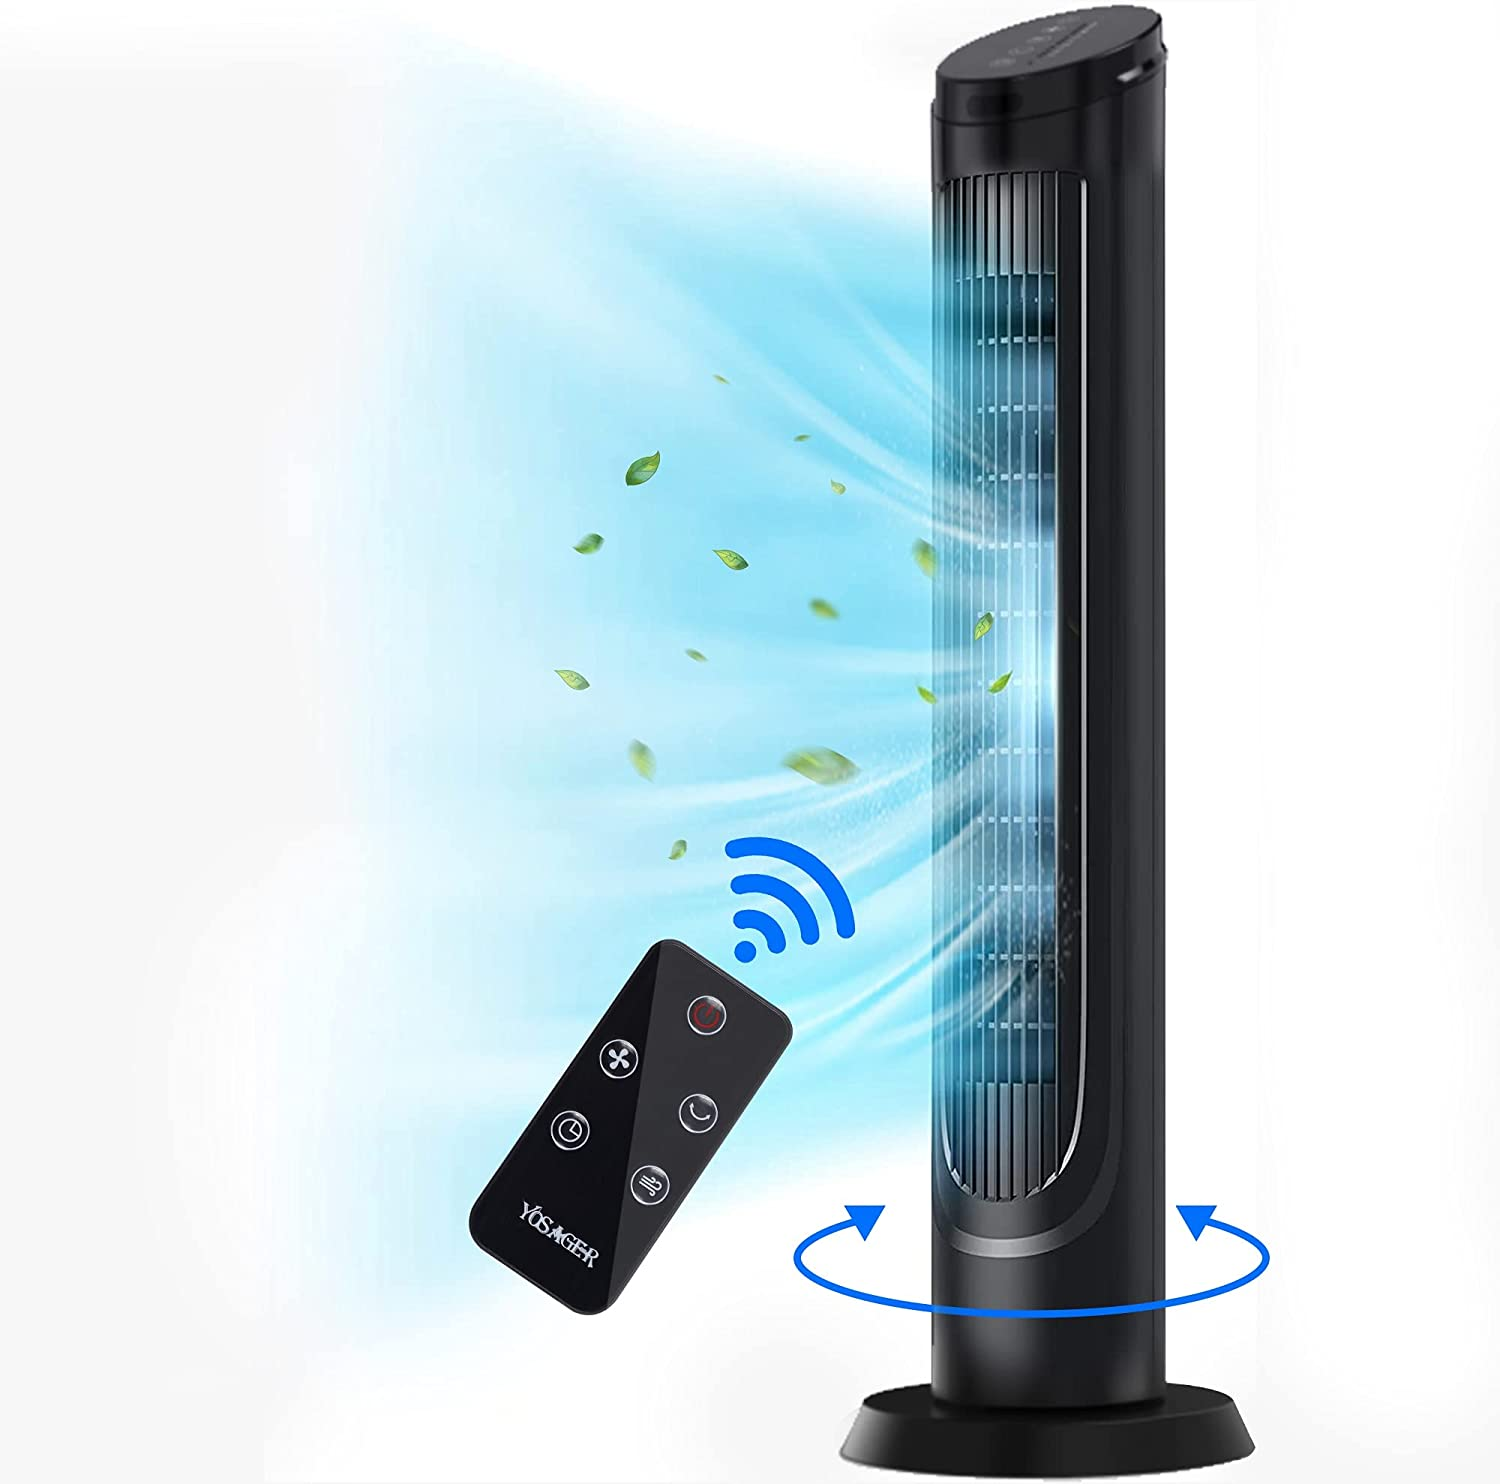 yosager Tower Fan, 40 Inch 90° Oscillating Cooling Fan Powerful Floor Fan with Remote, Touch Screen 3 Mode, 4 Speed, Stand up Tower Fan with Built-in Timer, Standing Fans for the Home Bedroom Office